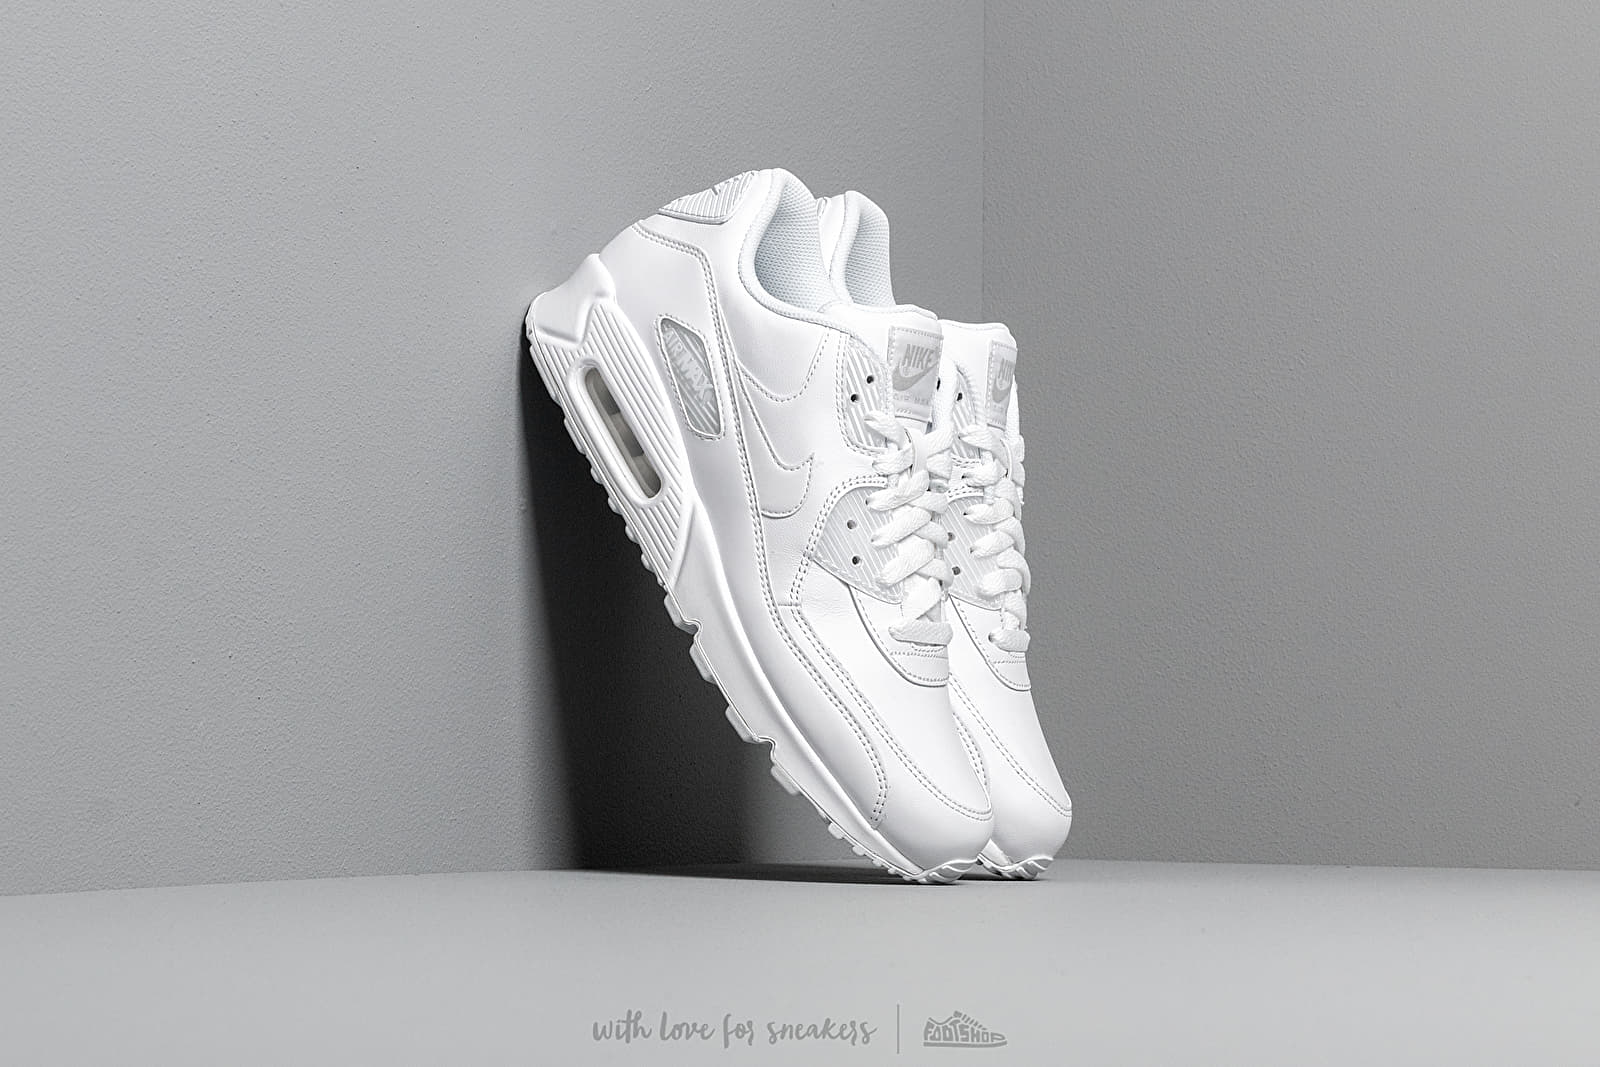 outlet store 07576 00302 nike-air-max-90-leather-true-white-true-white.jpg